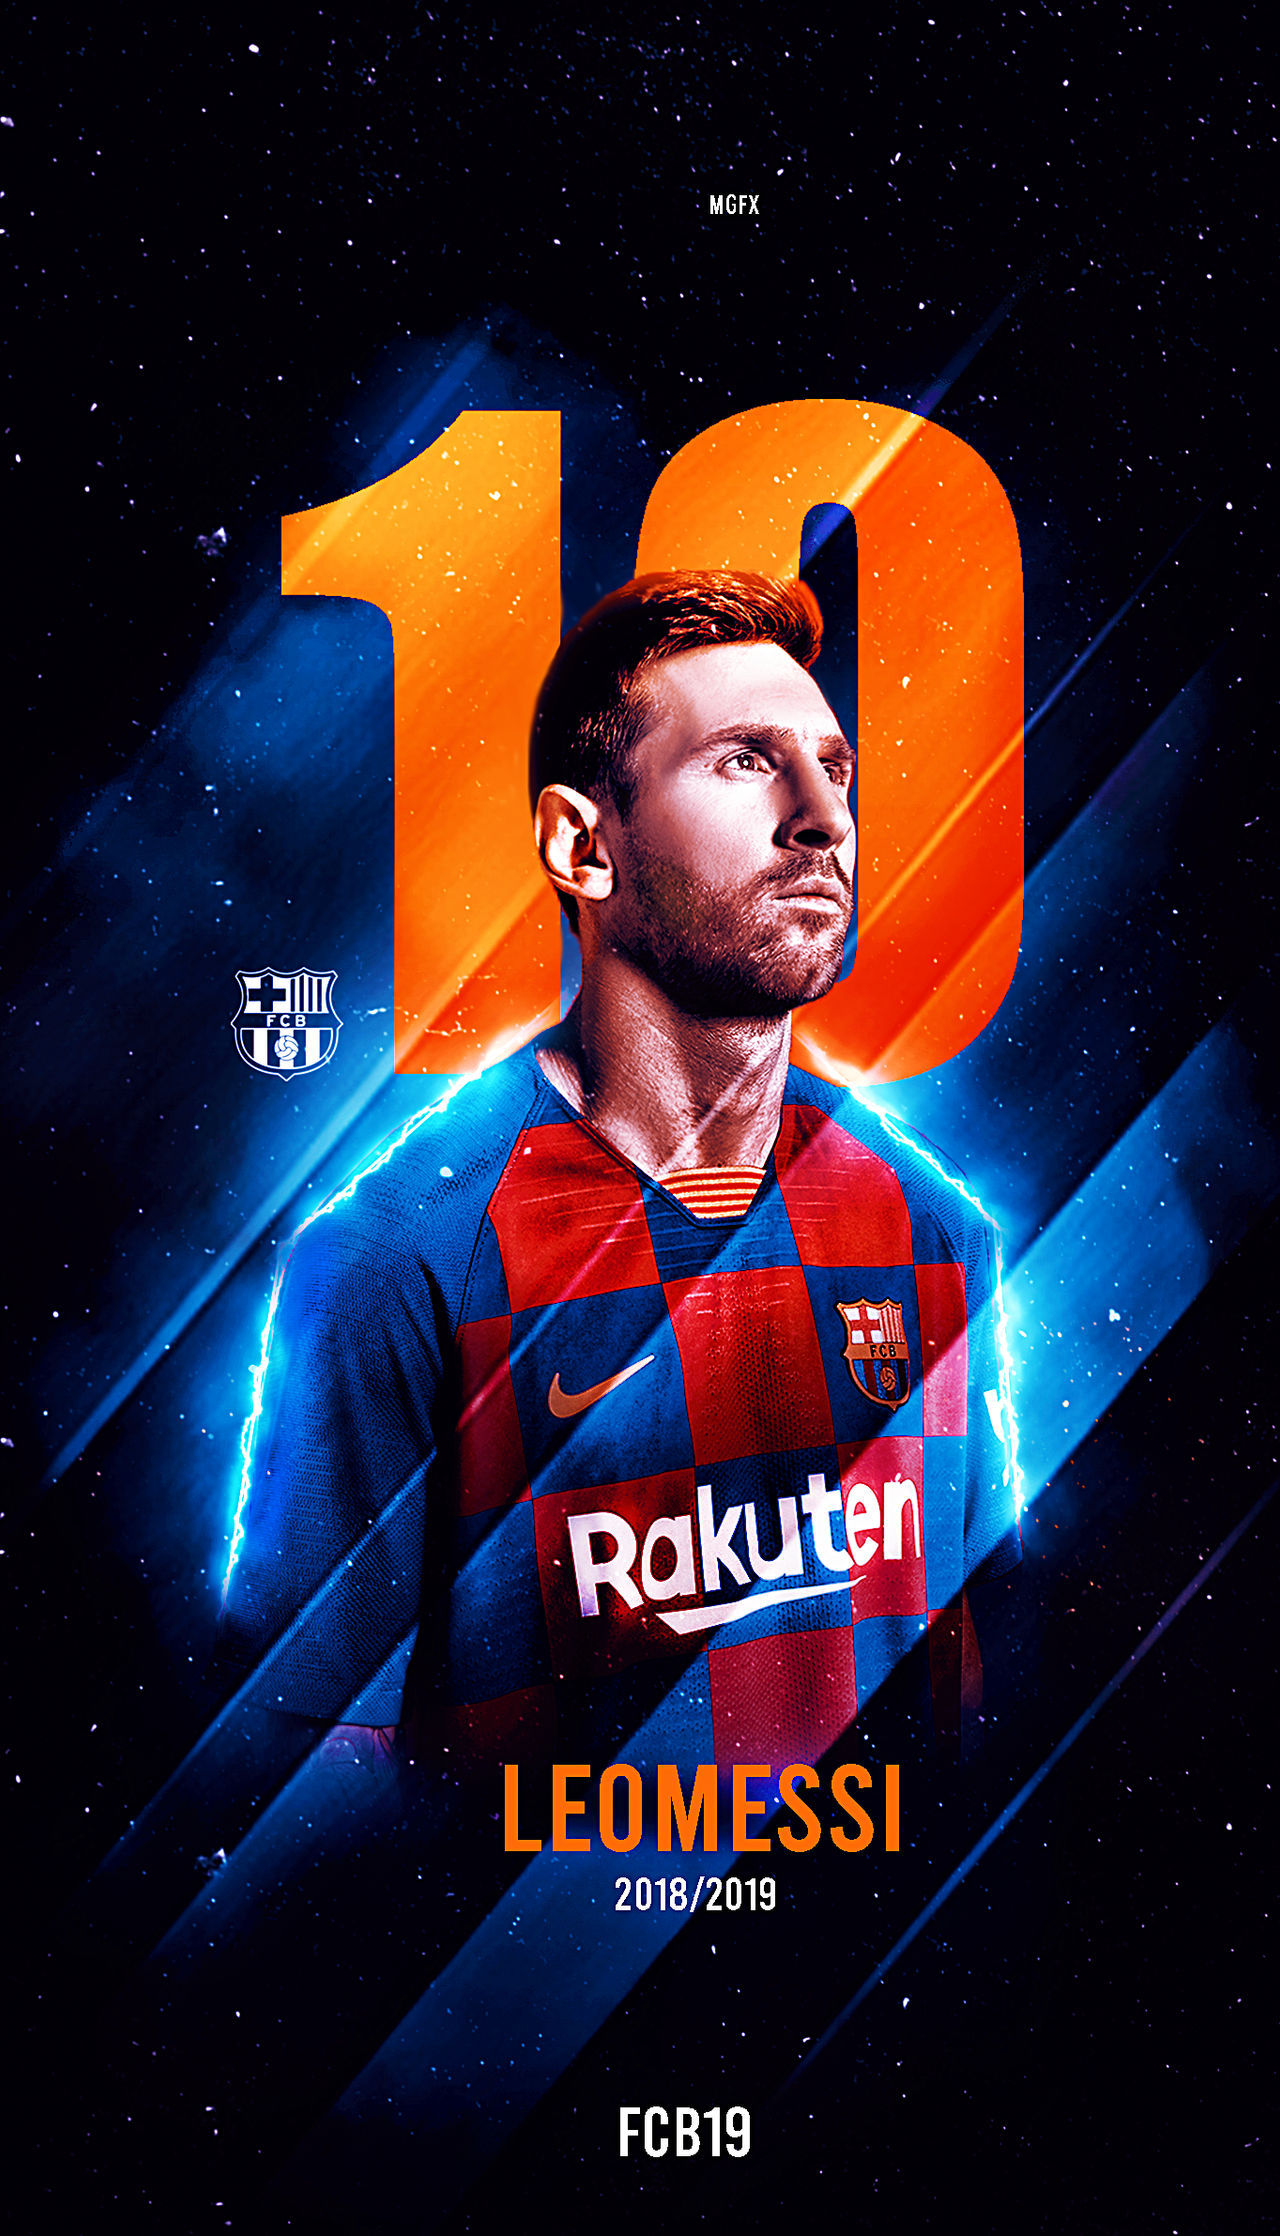 LIONEL MESSI WALLPAPER LOCKSCREEN 2019 By MohamedGfx10 On